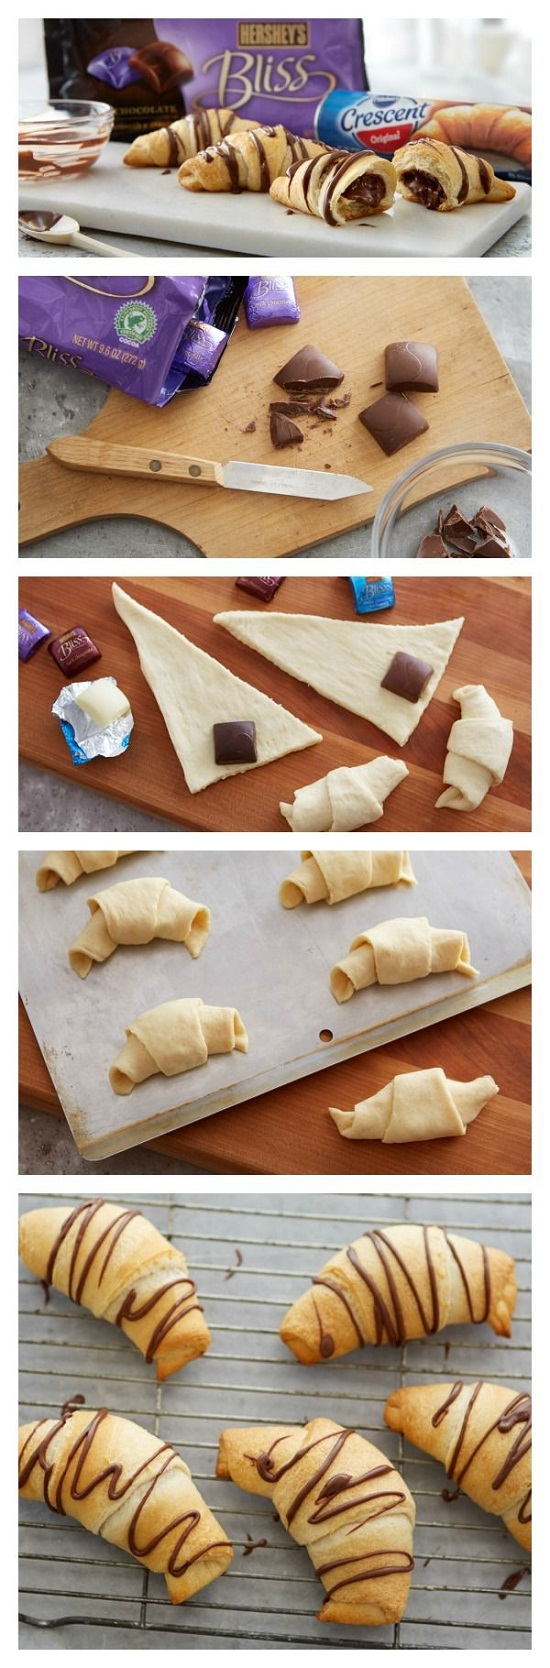 Chocolate-Filled-Crescents-Rolls-Recipe